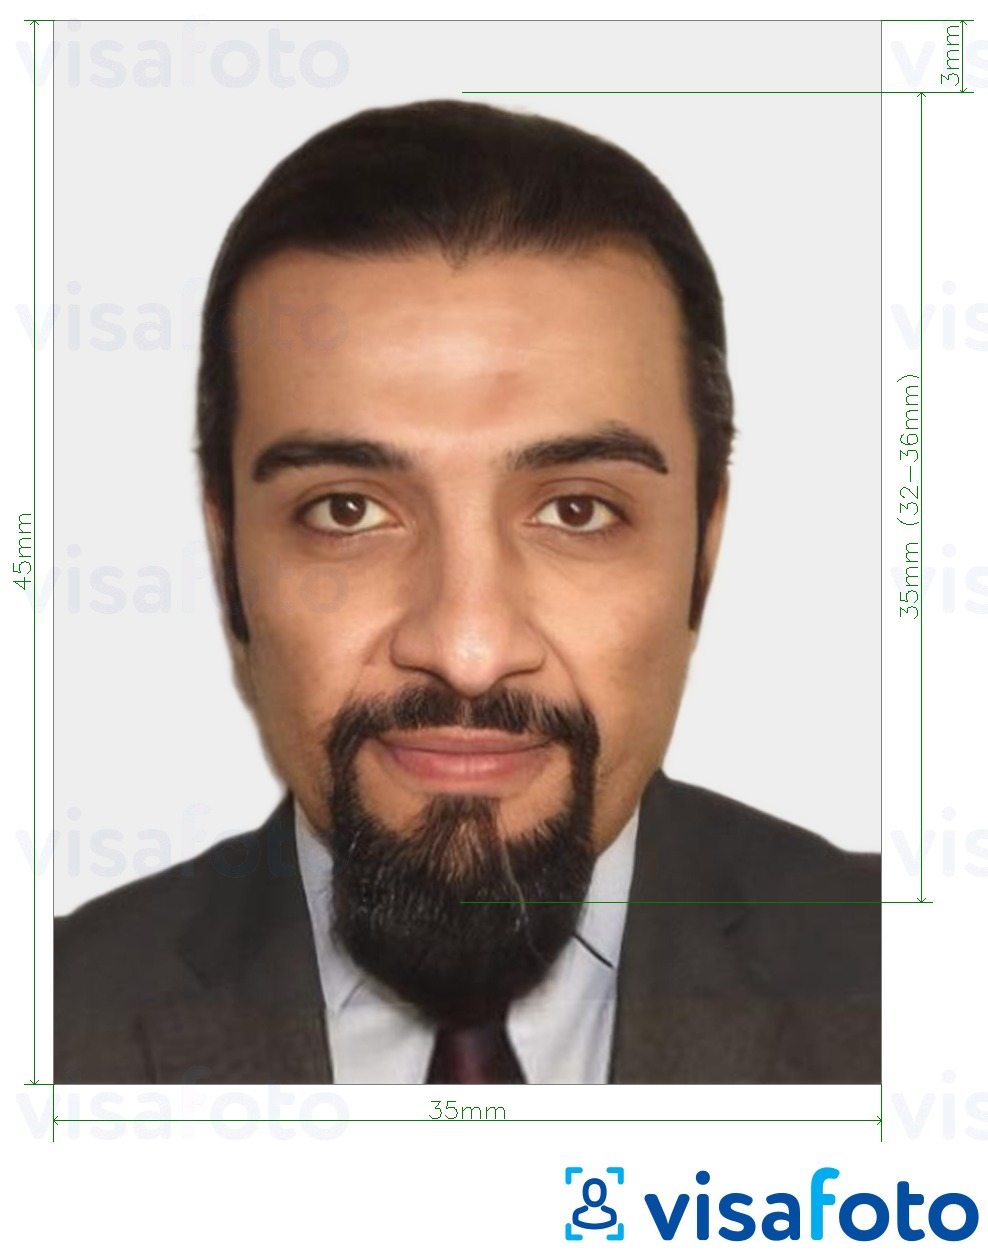 Example of photo for Morocco visa 35x45 mm (3.5x4.5 cm) with exact size specification